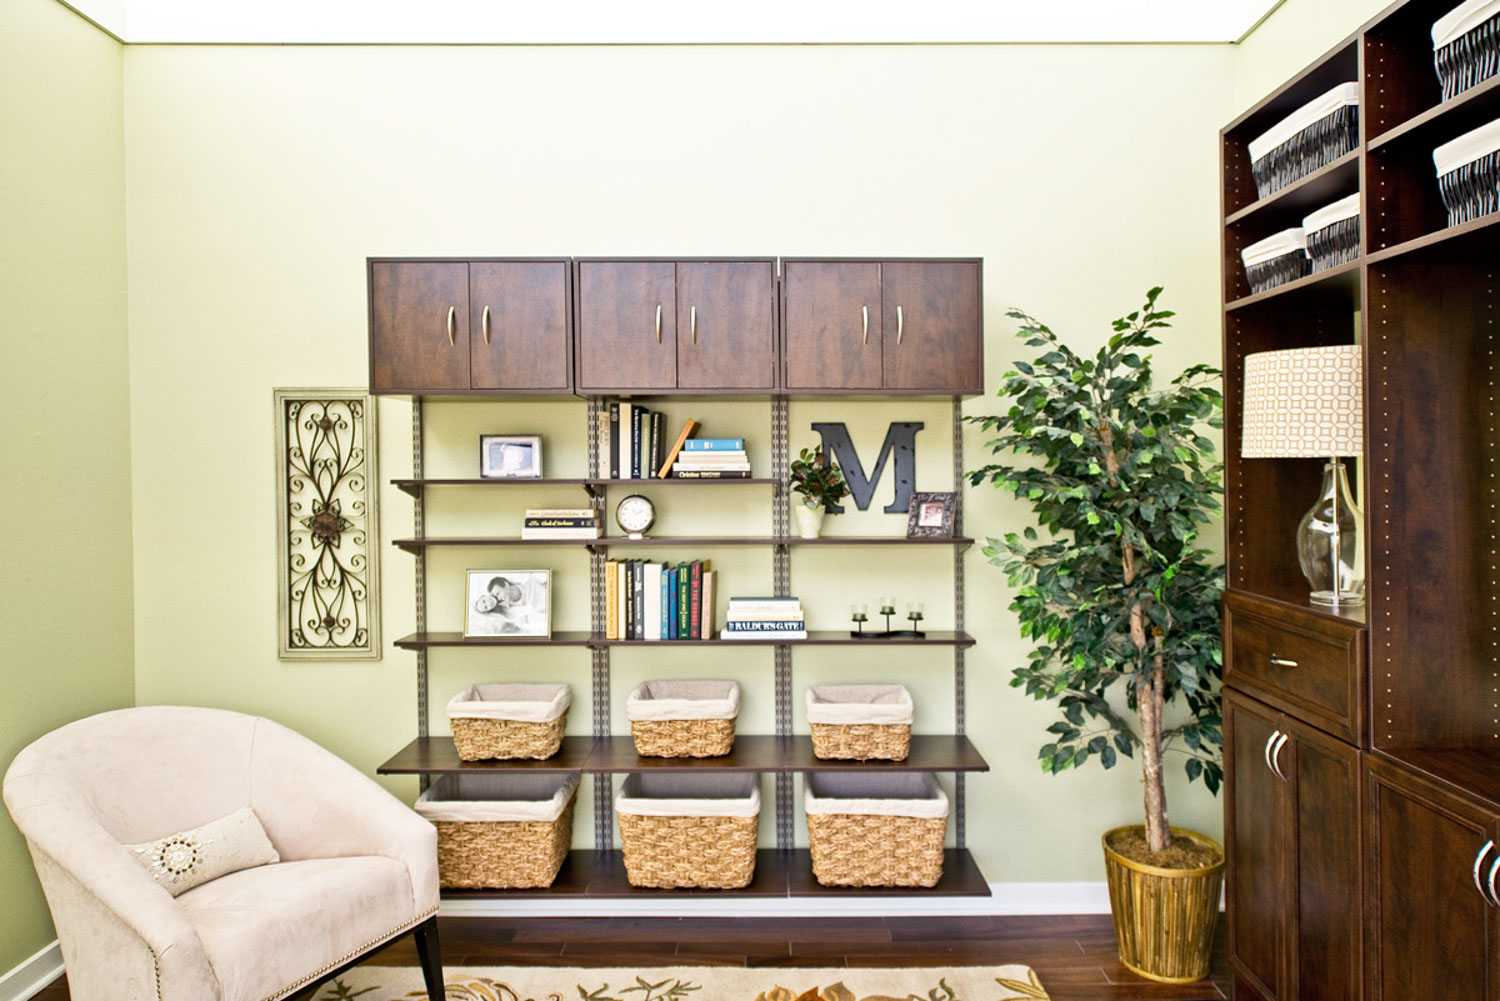 organized living home storage solutions. Black Bedroom Furniture Sets. Home Design Ideas